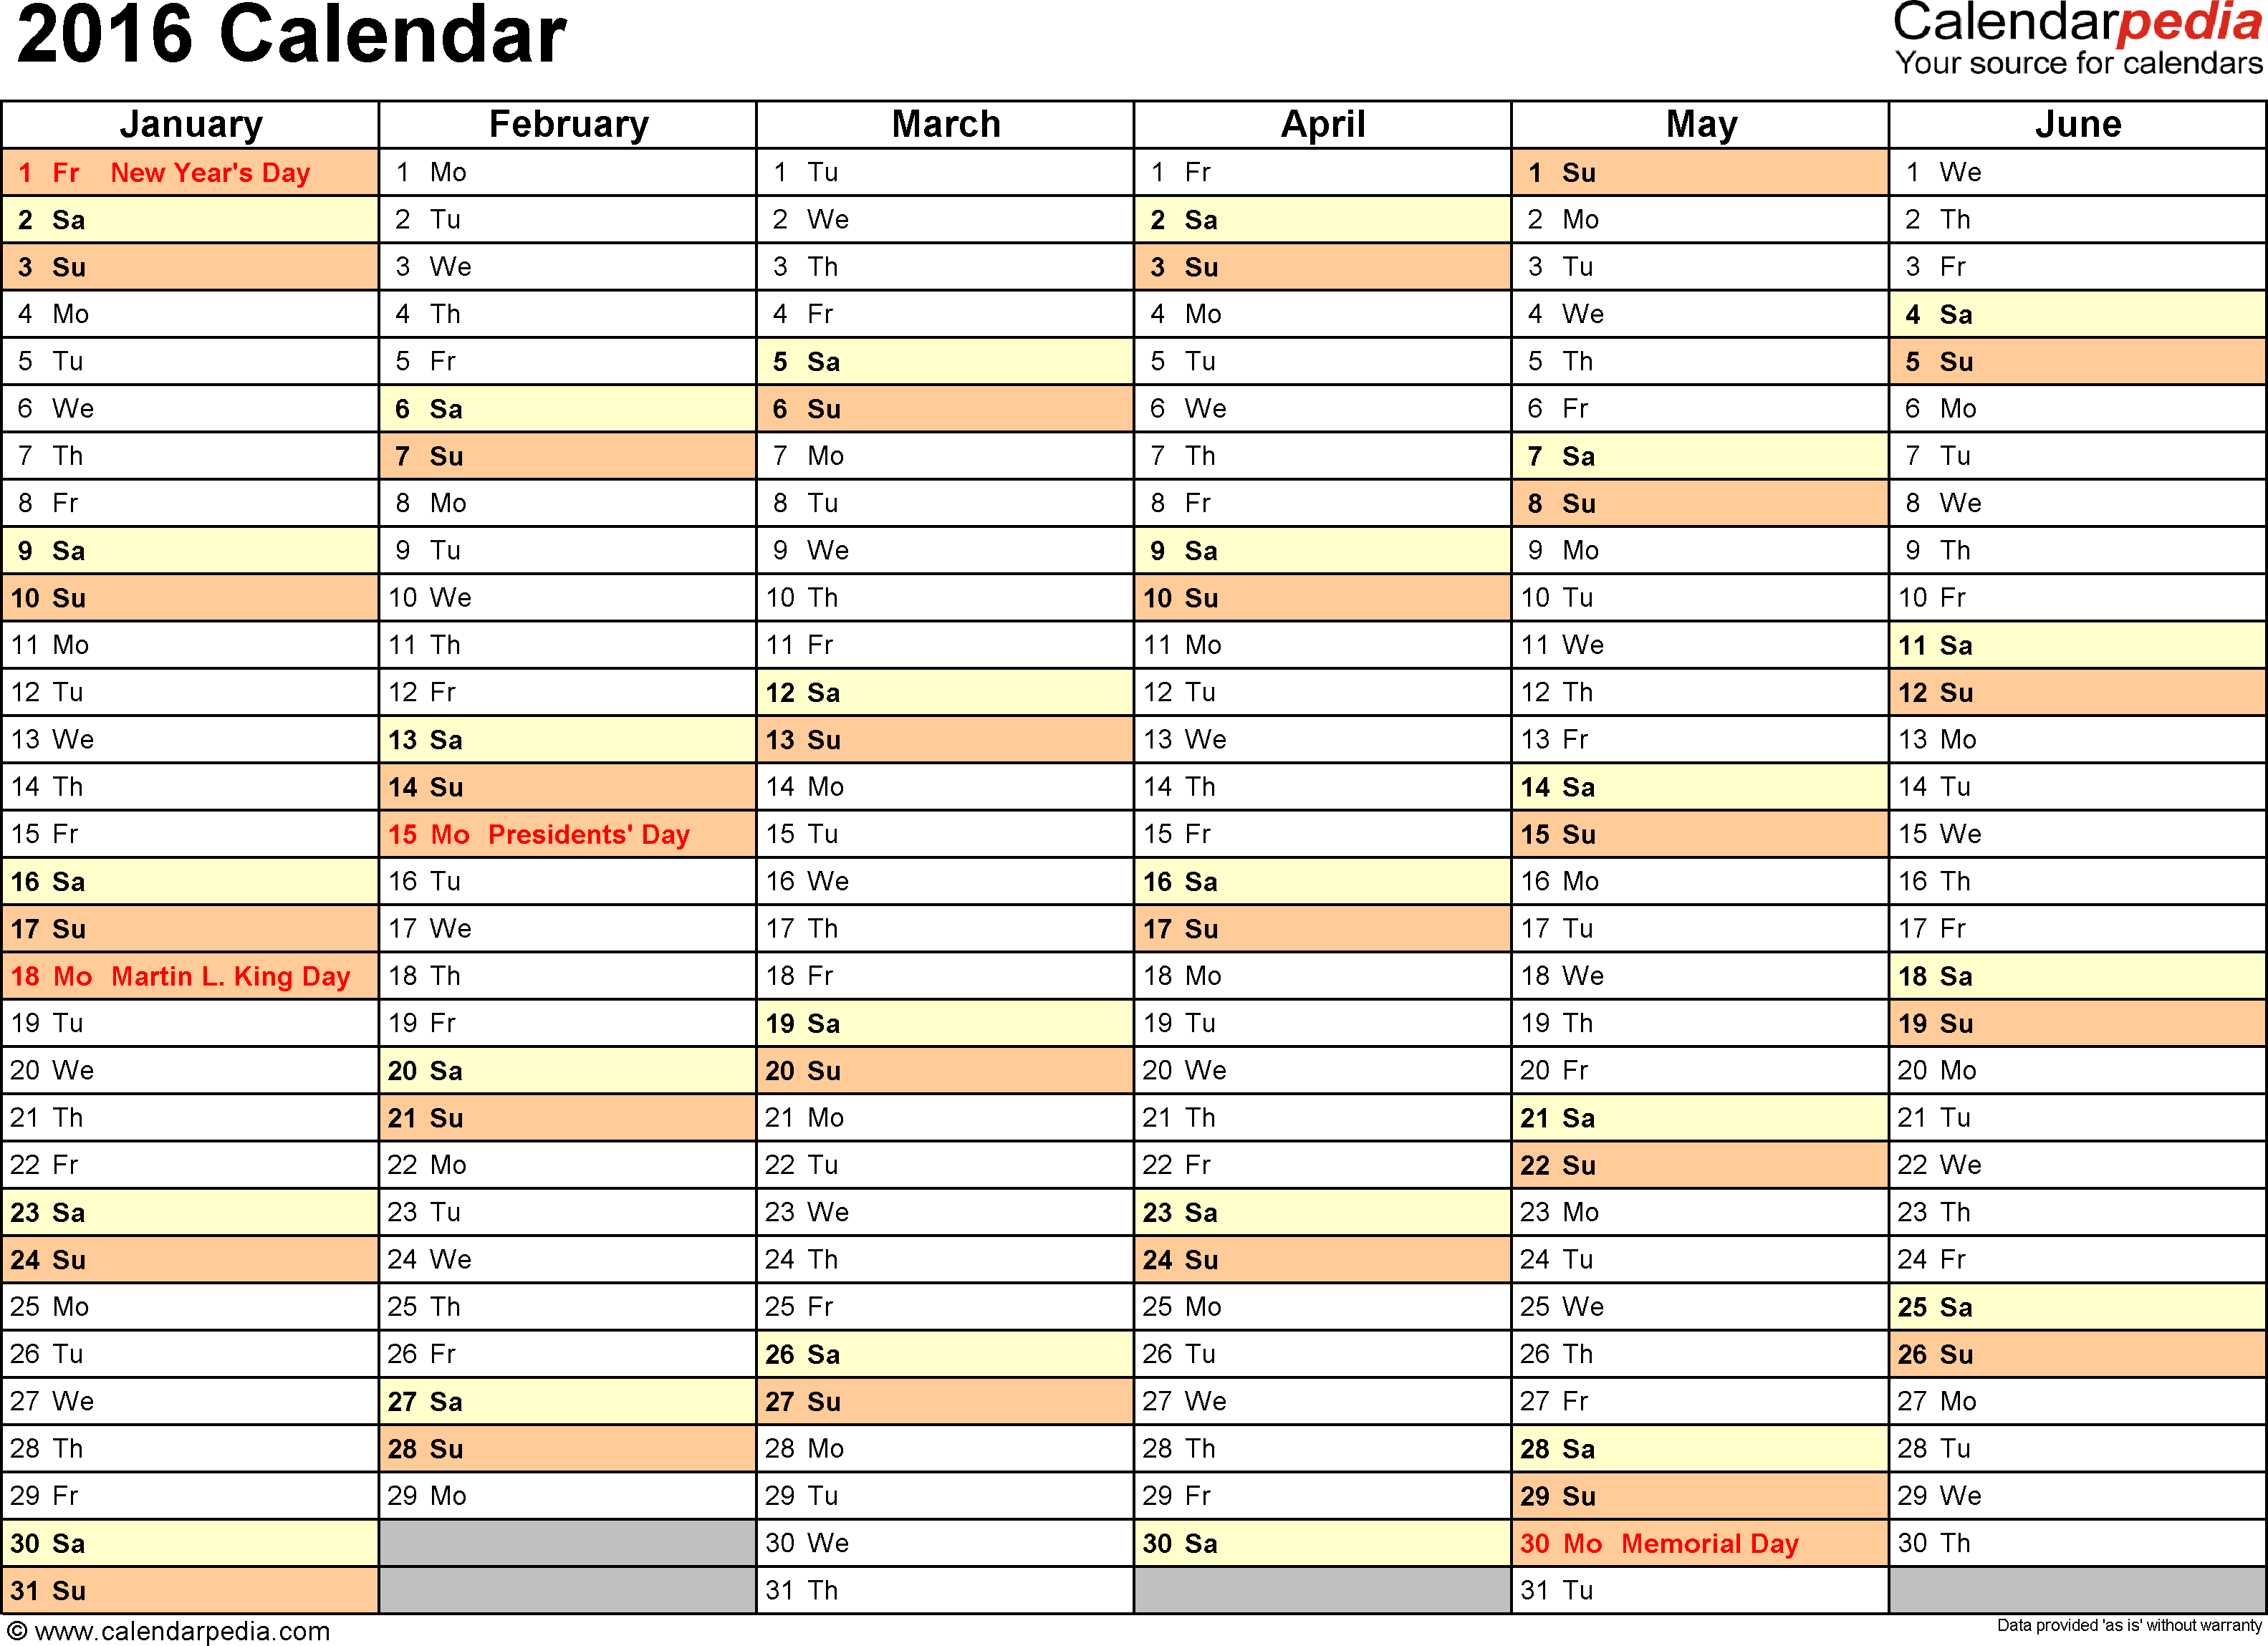 Ediblewildsus  Surprising  Calendar  Download  Free Printable Excel Templates Xls With Outstanding Template   Calendar For Excel Months Horizontally  Pages Landscape Orientation With Astounding Excel  Wrap Text Also Excel Vba Operators In Addition Relative Standard Deviation In Excel And Time Subtraction In Excel As Well As Equation Editor Excel Additionally Help With Excel Spreadsheet From Calendarpediacom With Ediblewildsus  Outstanding  Calendar  Download  Free Printable Excel Templates Xls With Astounding Template   Calendar For Excel Months Horizontally  Pages Landscape Orientation And Surprising Excel  Wrap Text Also Excel Vba Operators In Addition Relative Standard Deviation In Excel From Calendarpediacom